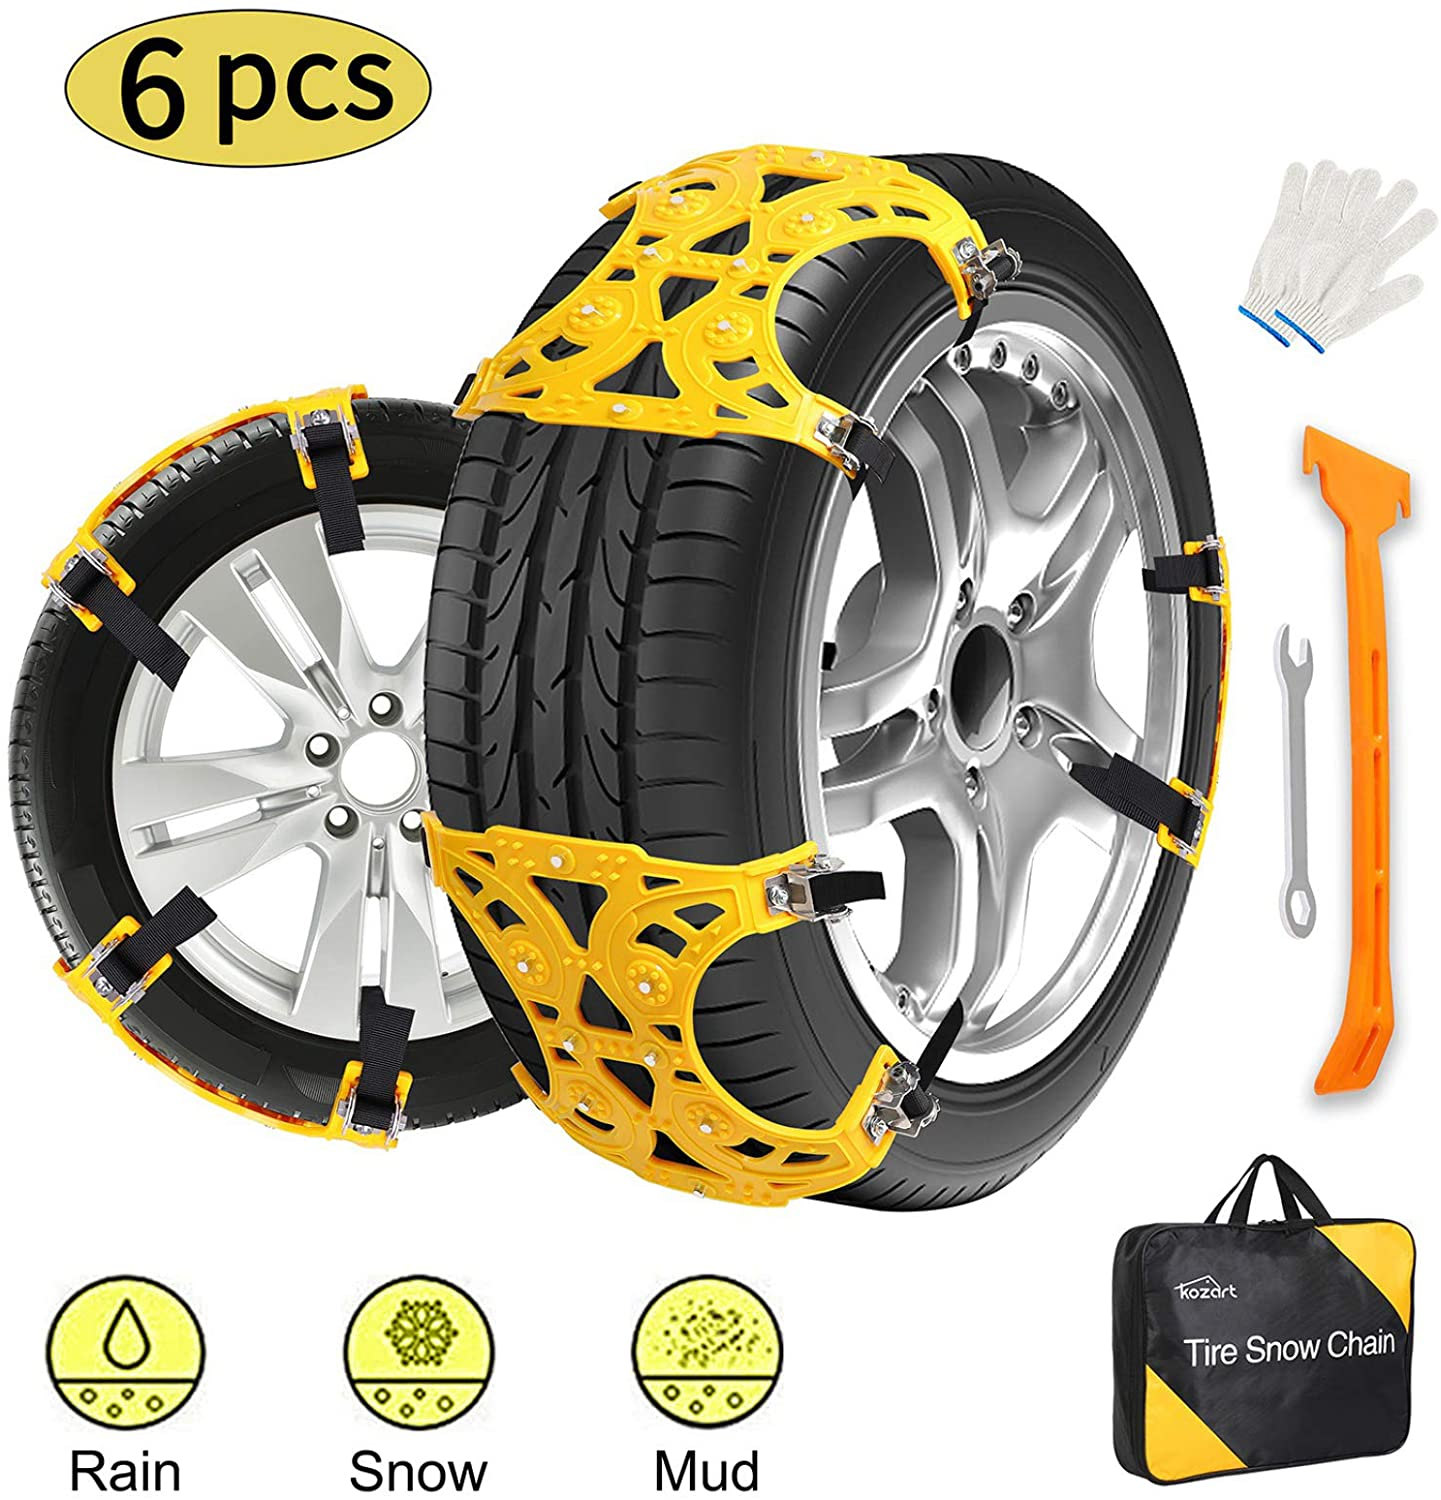 Kozart Snow Chains for Car, 6 Pcs Emergency Tire Chains for Pickup Trucks, Cars, and SUVs, Universal Anti Slip Snow Chains for SUV, Adjustable Traction Tire Chains